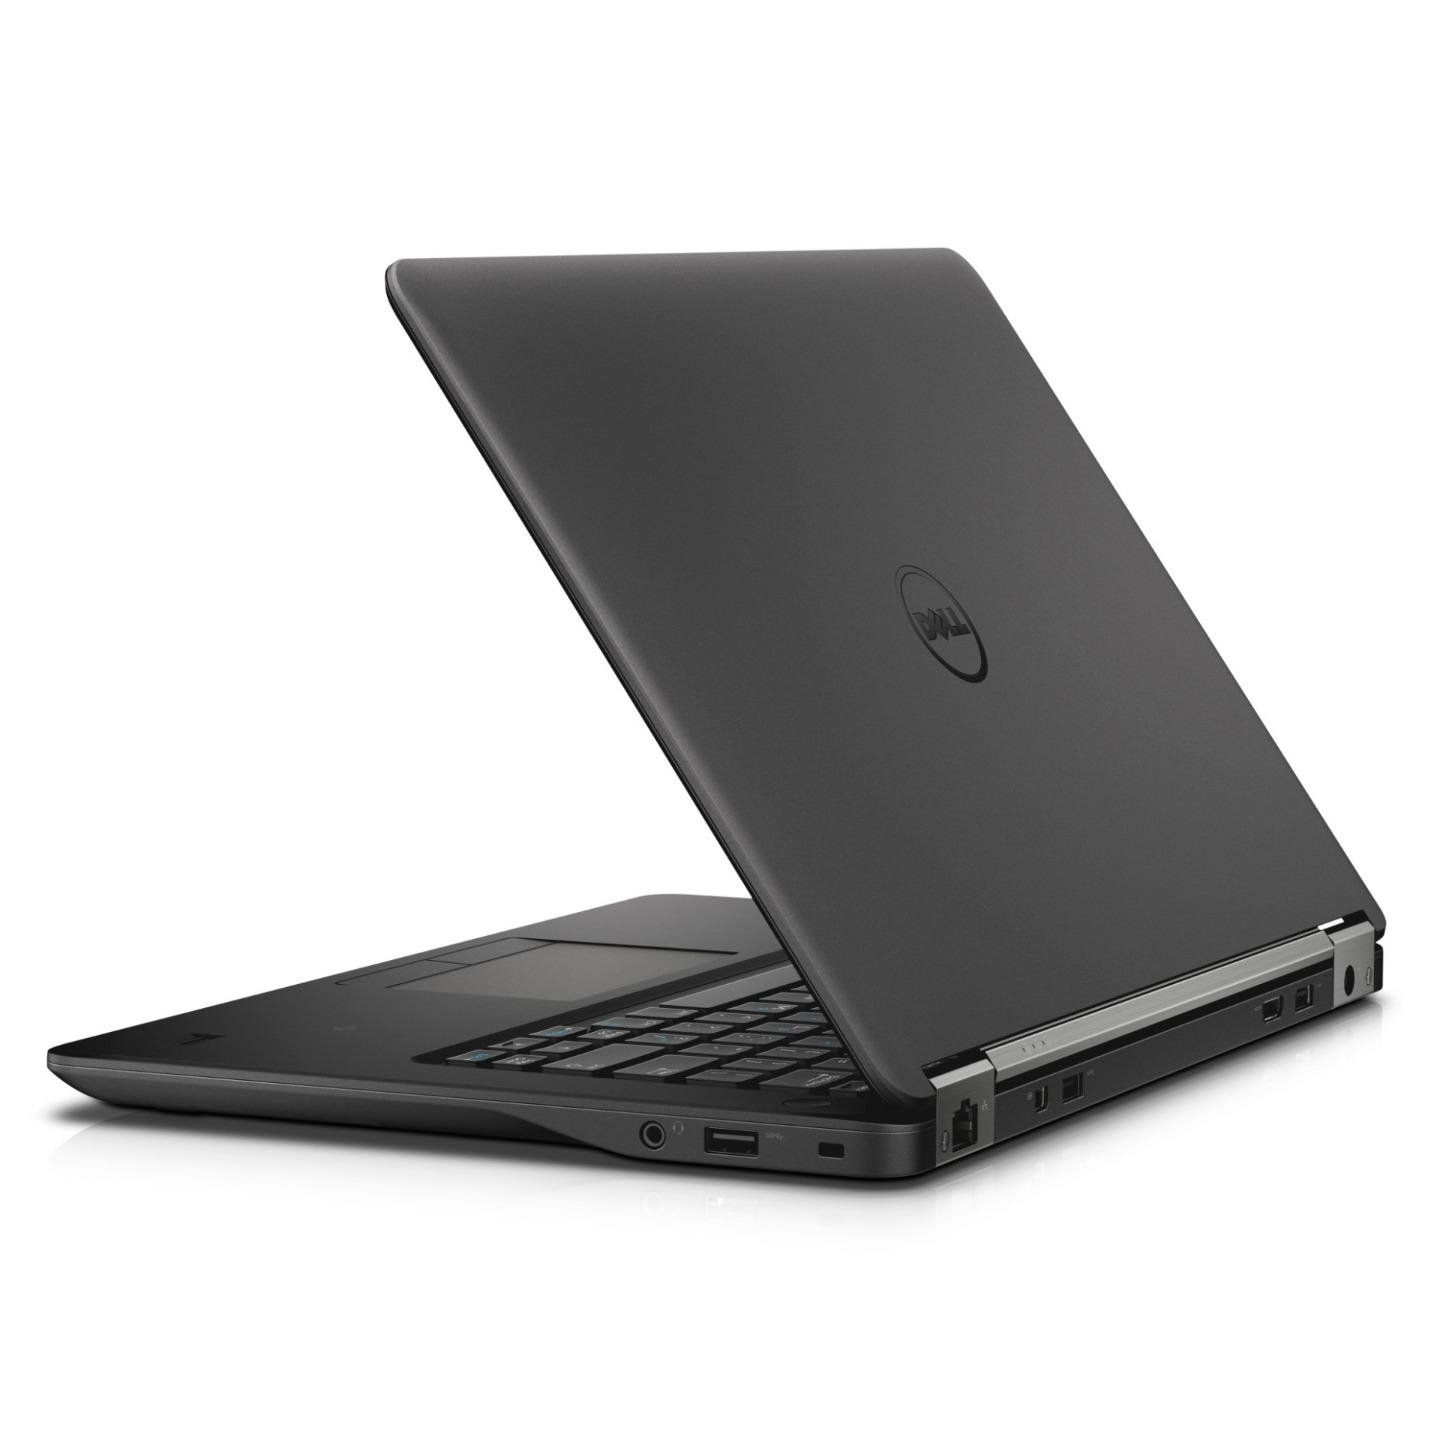 "Dell Latitude E7470 Intel Core i5-6300U X2 2.4GHz 8GB 256GB SSD 14"", Black (Certified Refurbished)"